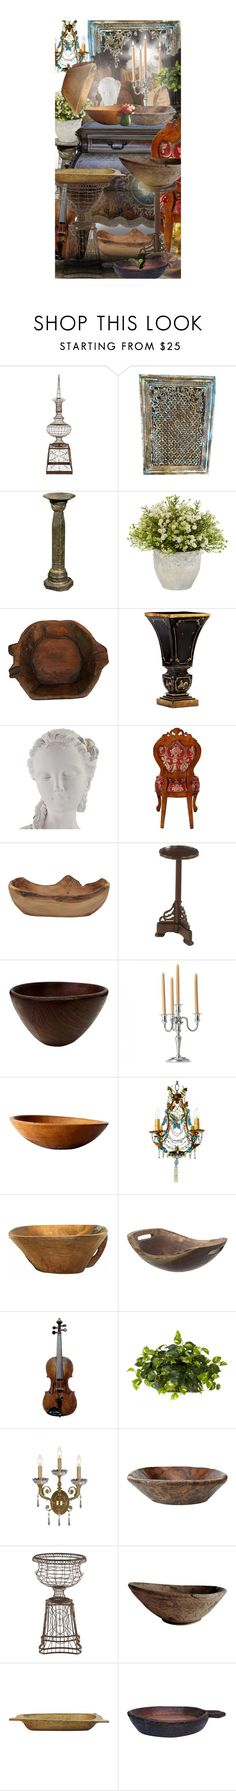 """Decorate with a Dough Bowl!"" by jcmp ❤ liked on Polyvore featuring interior, interiors, interior design, home, home decor, interior decorating, Aidan Gray, WALL, Nearly Natural and Sterling Industries"